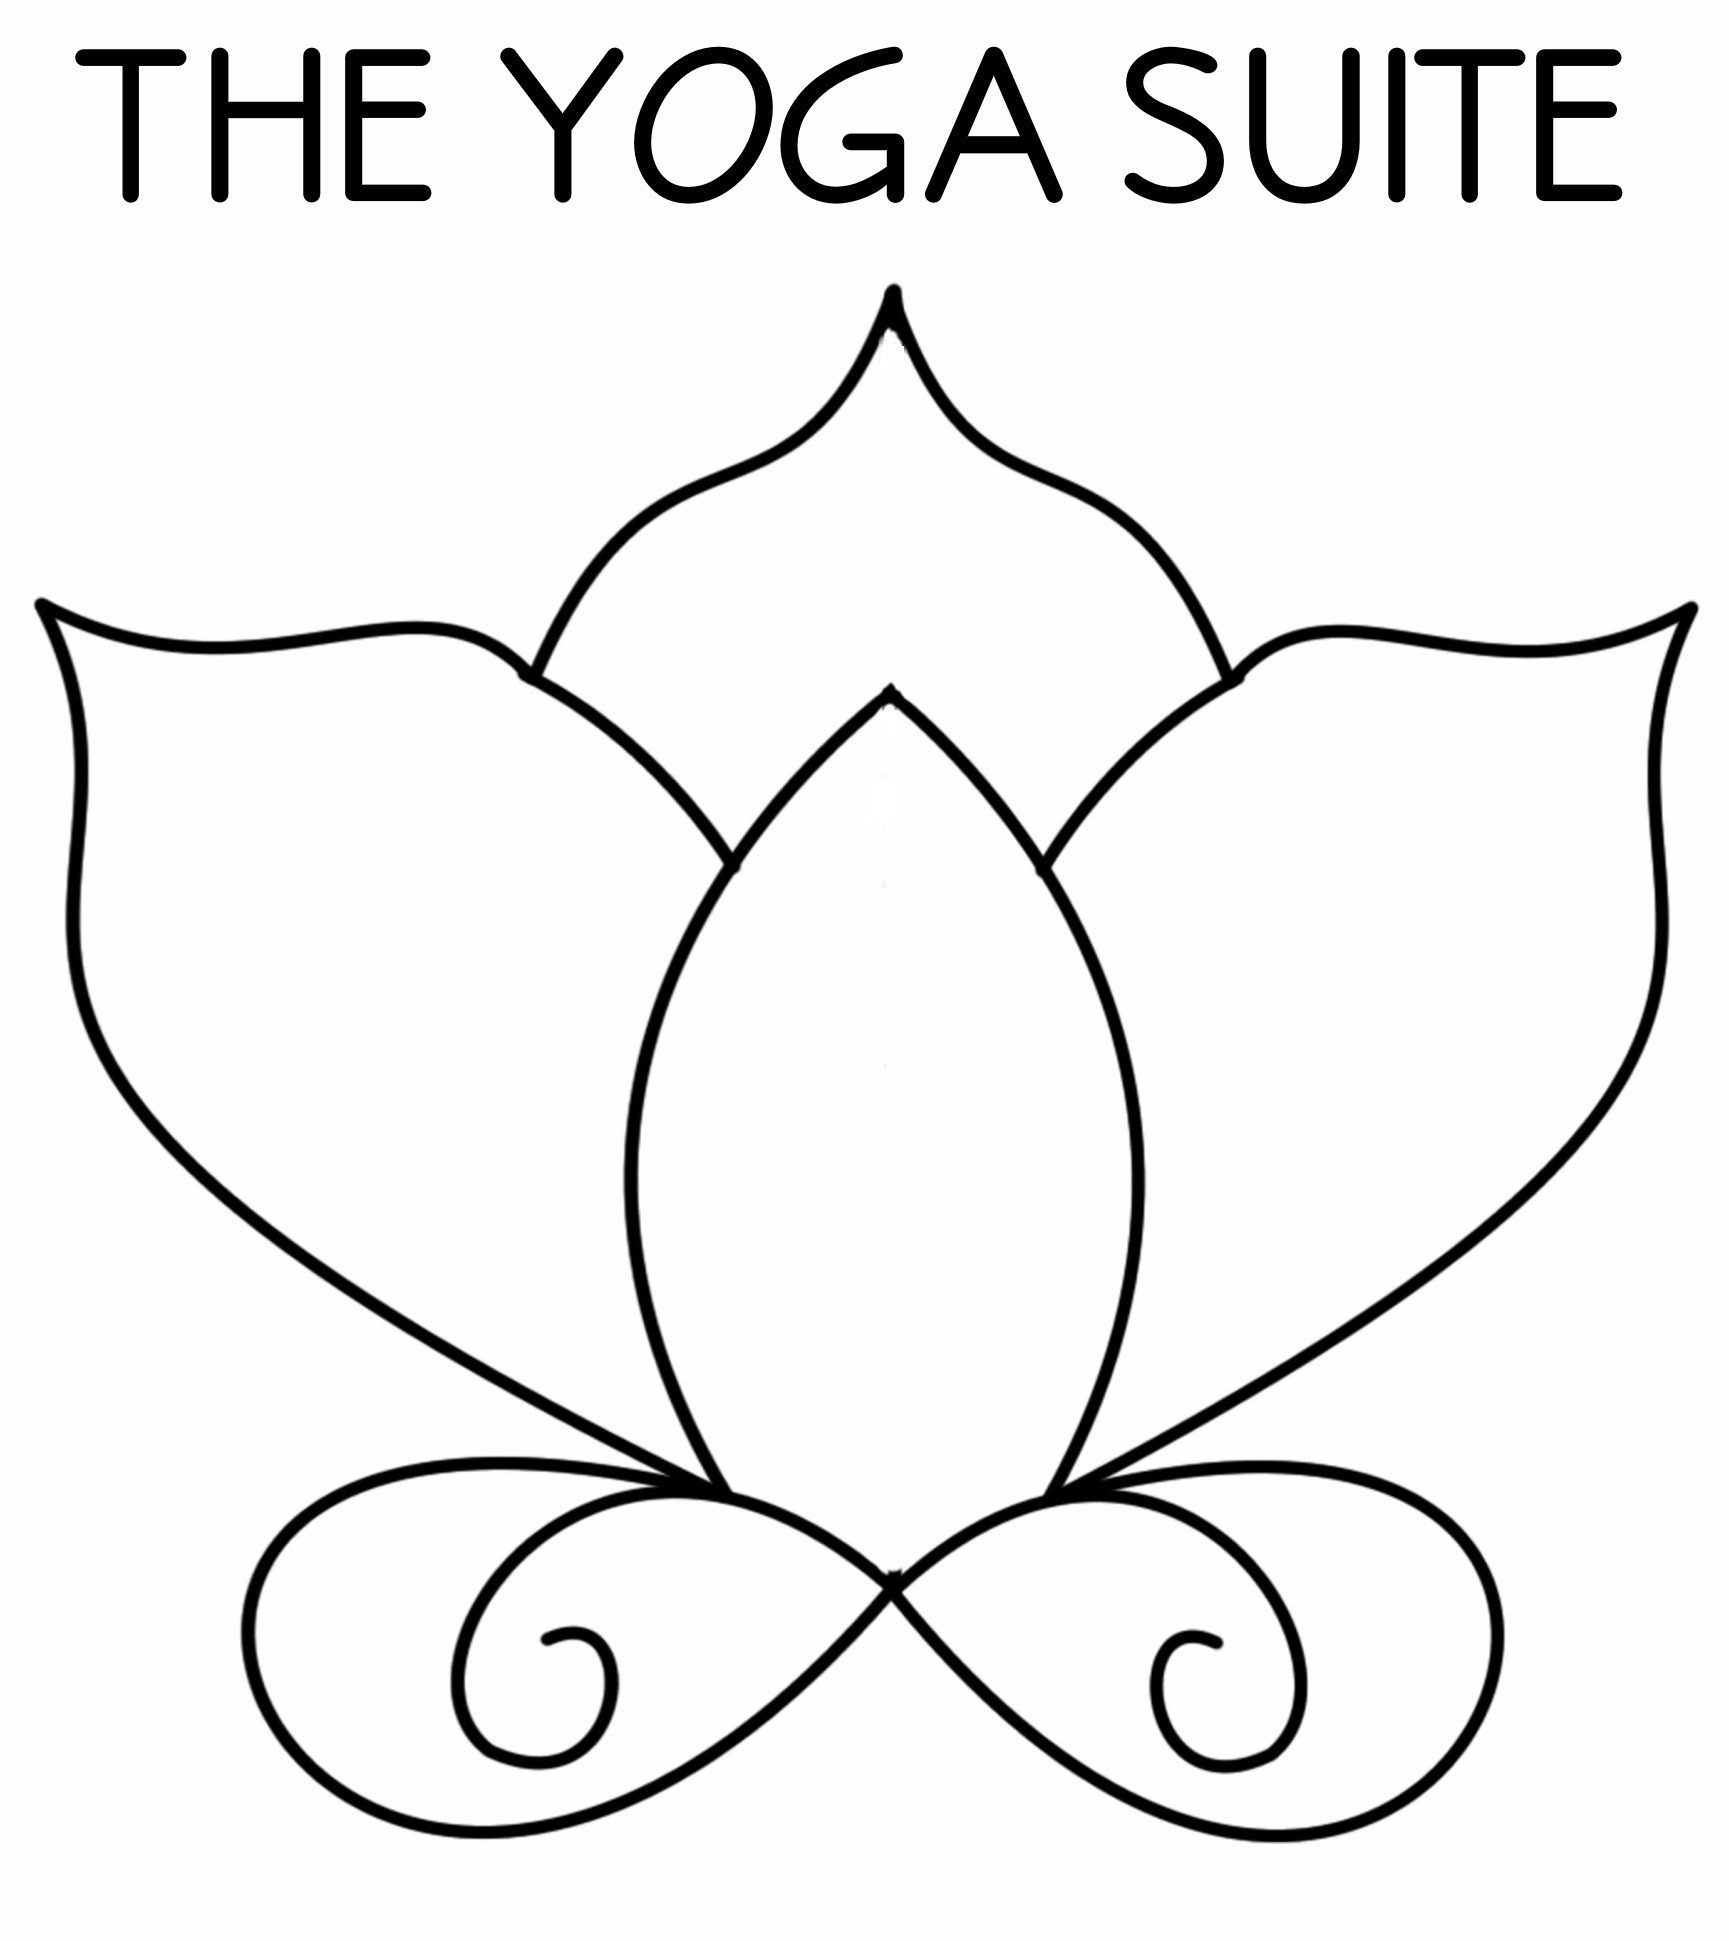 Introduction to Yoga